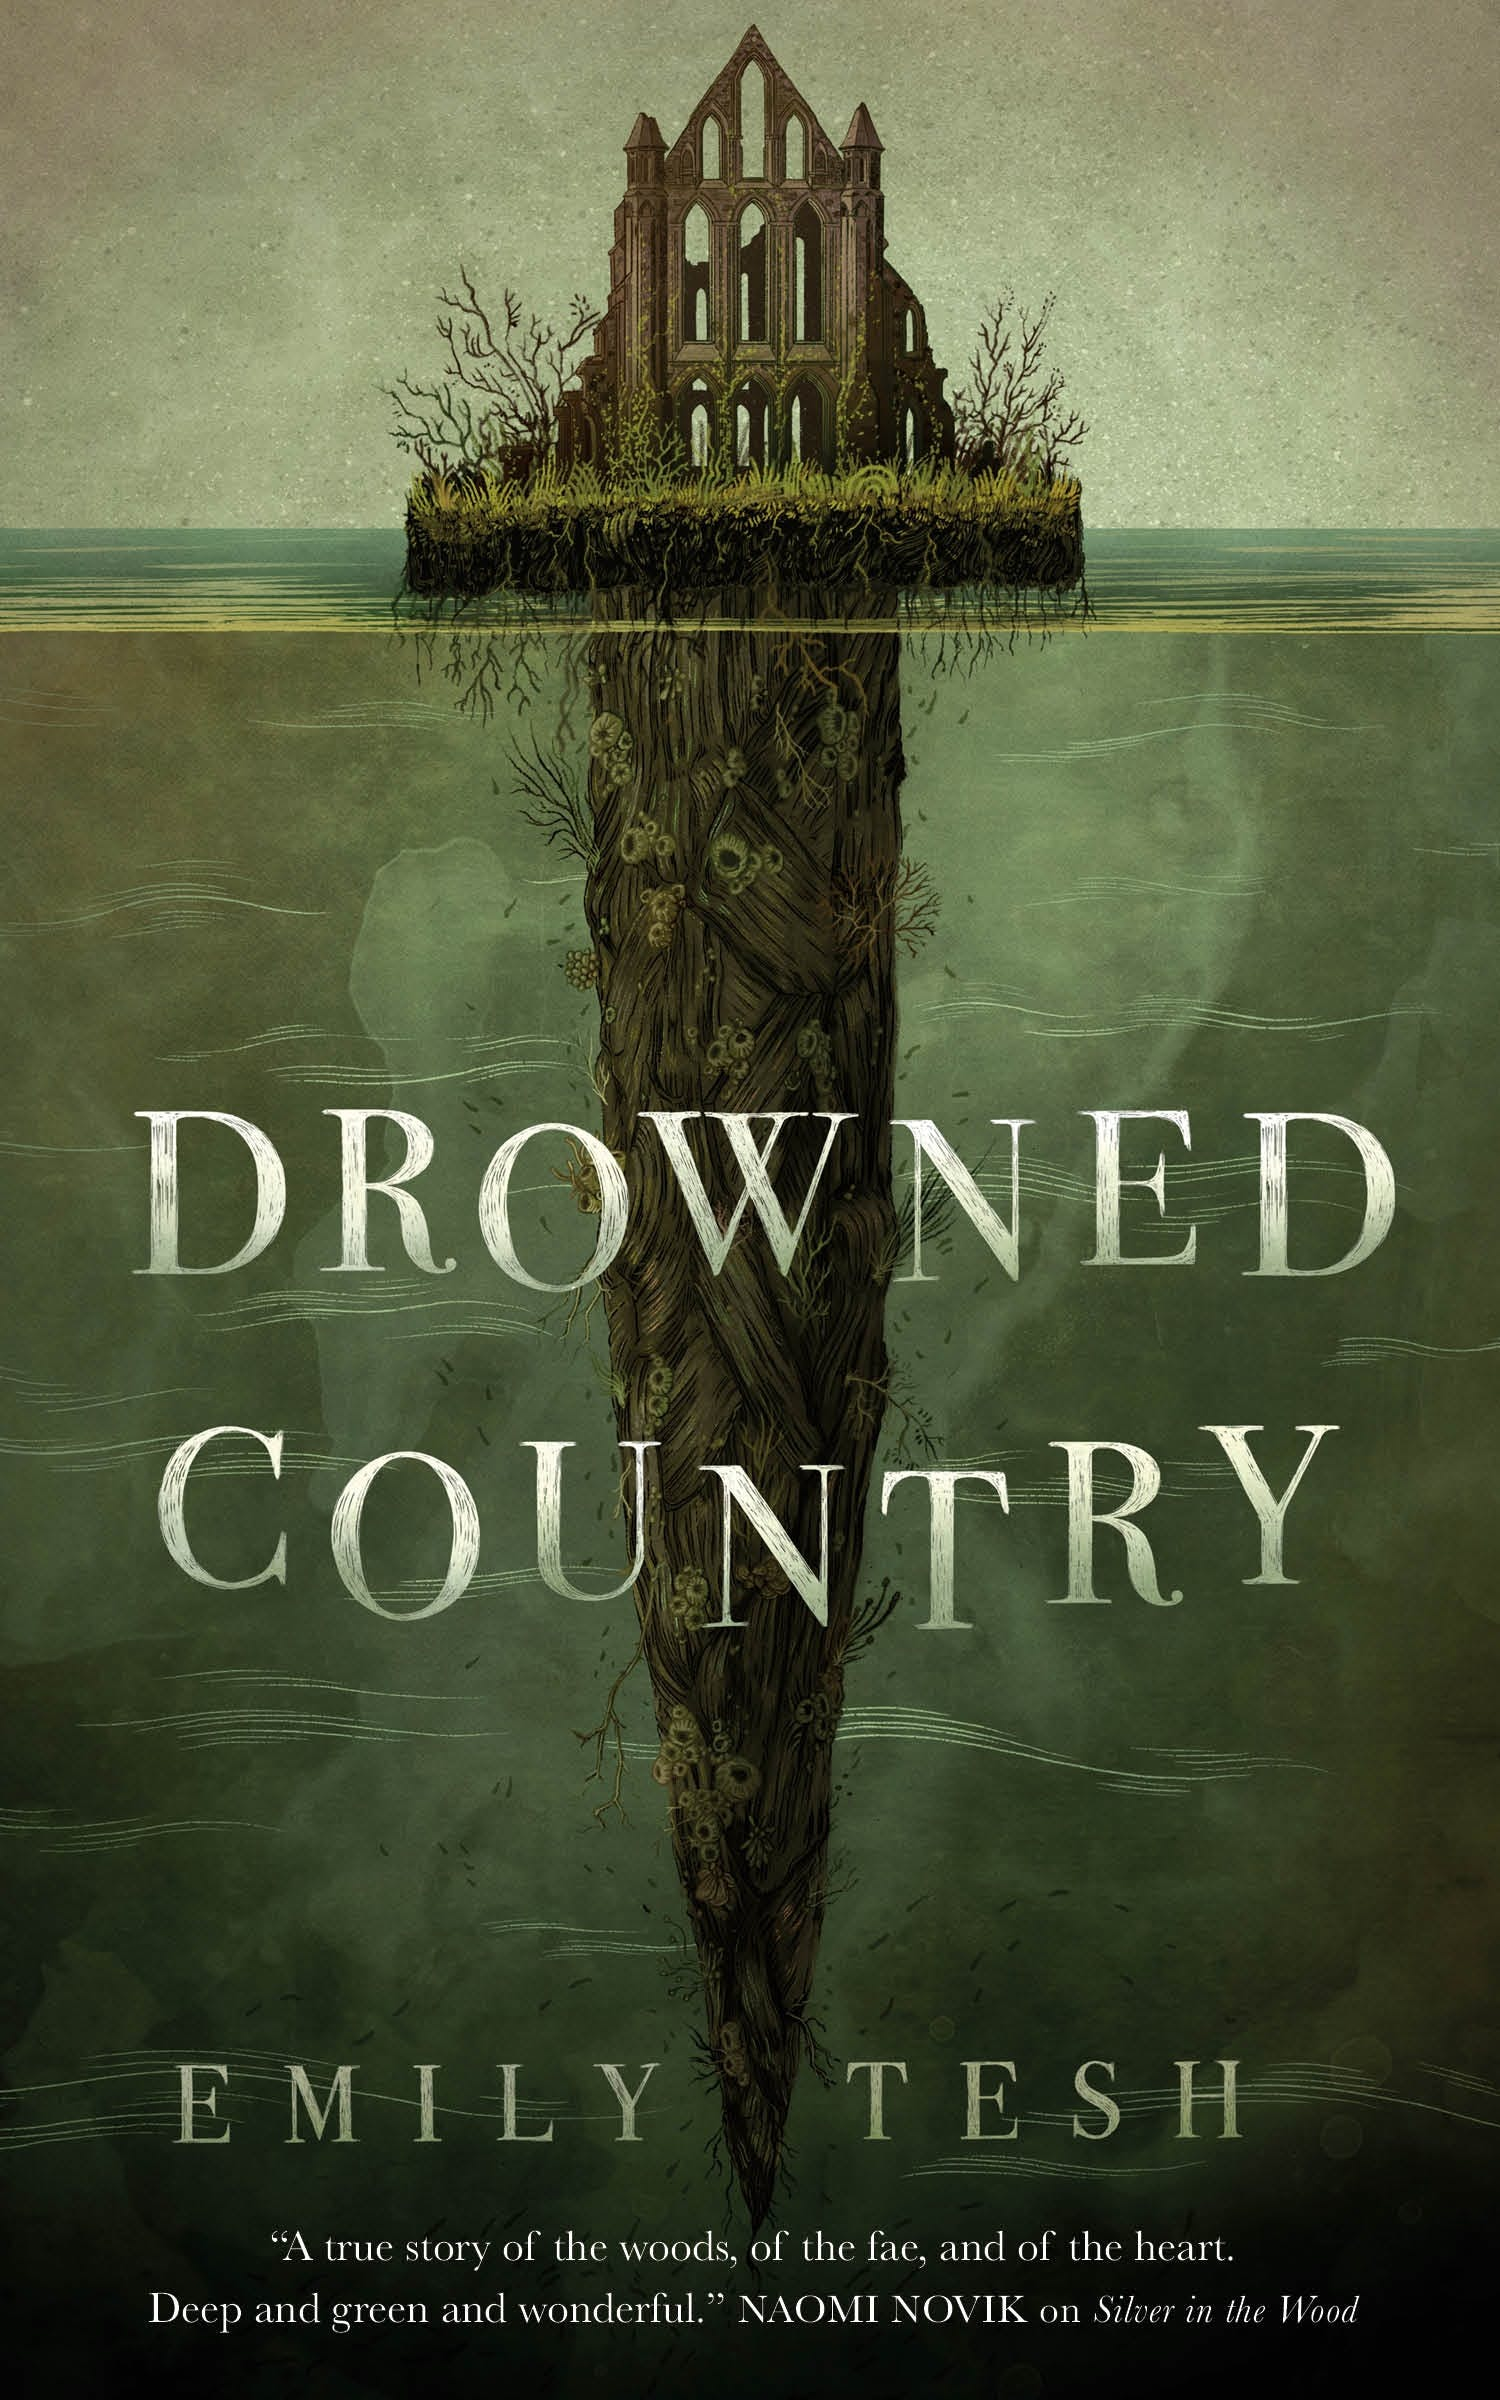 Image of Drowned Country